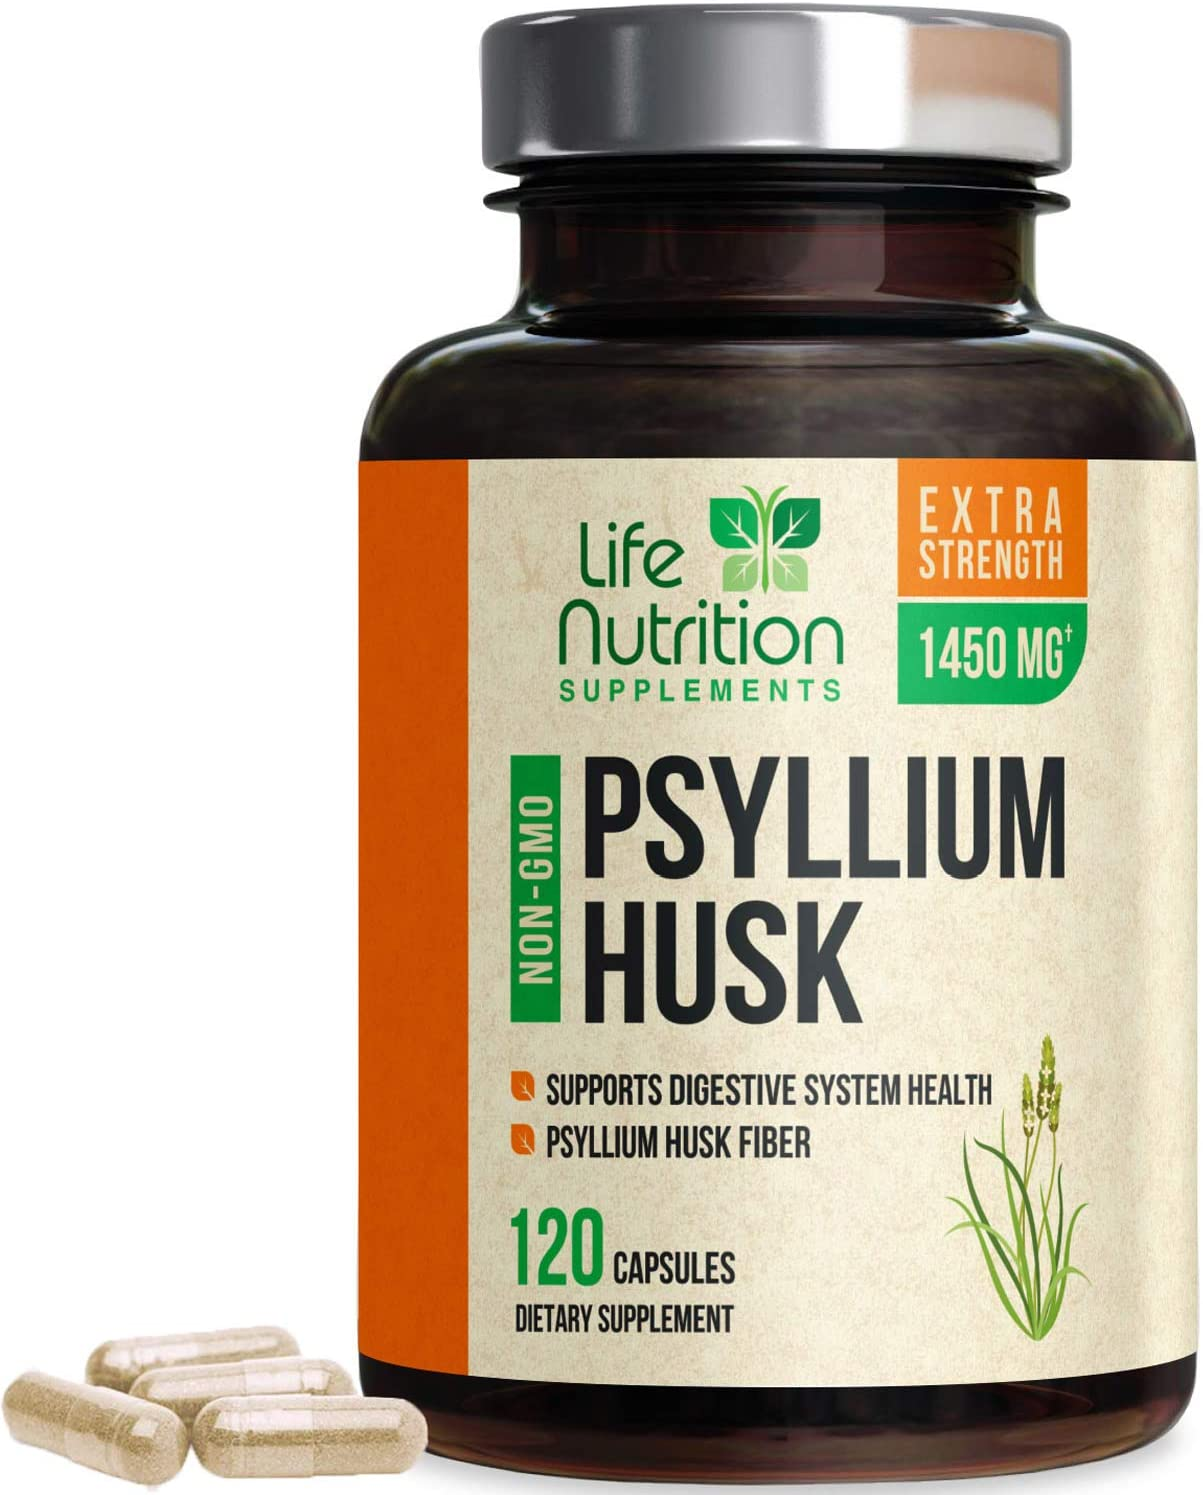 Psyllium Husk Capsules Natural Dietary Fiber 1450mg - Psyllium Powder Supplement - Made in USA - Best Water Soluble Pills, Helps Support Digestion & Regularity - 120 Capsules